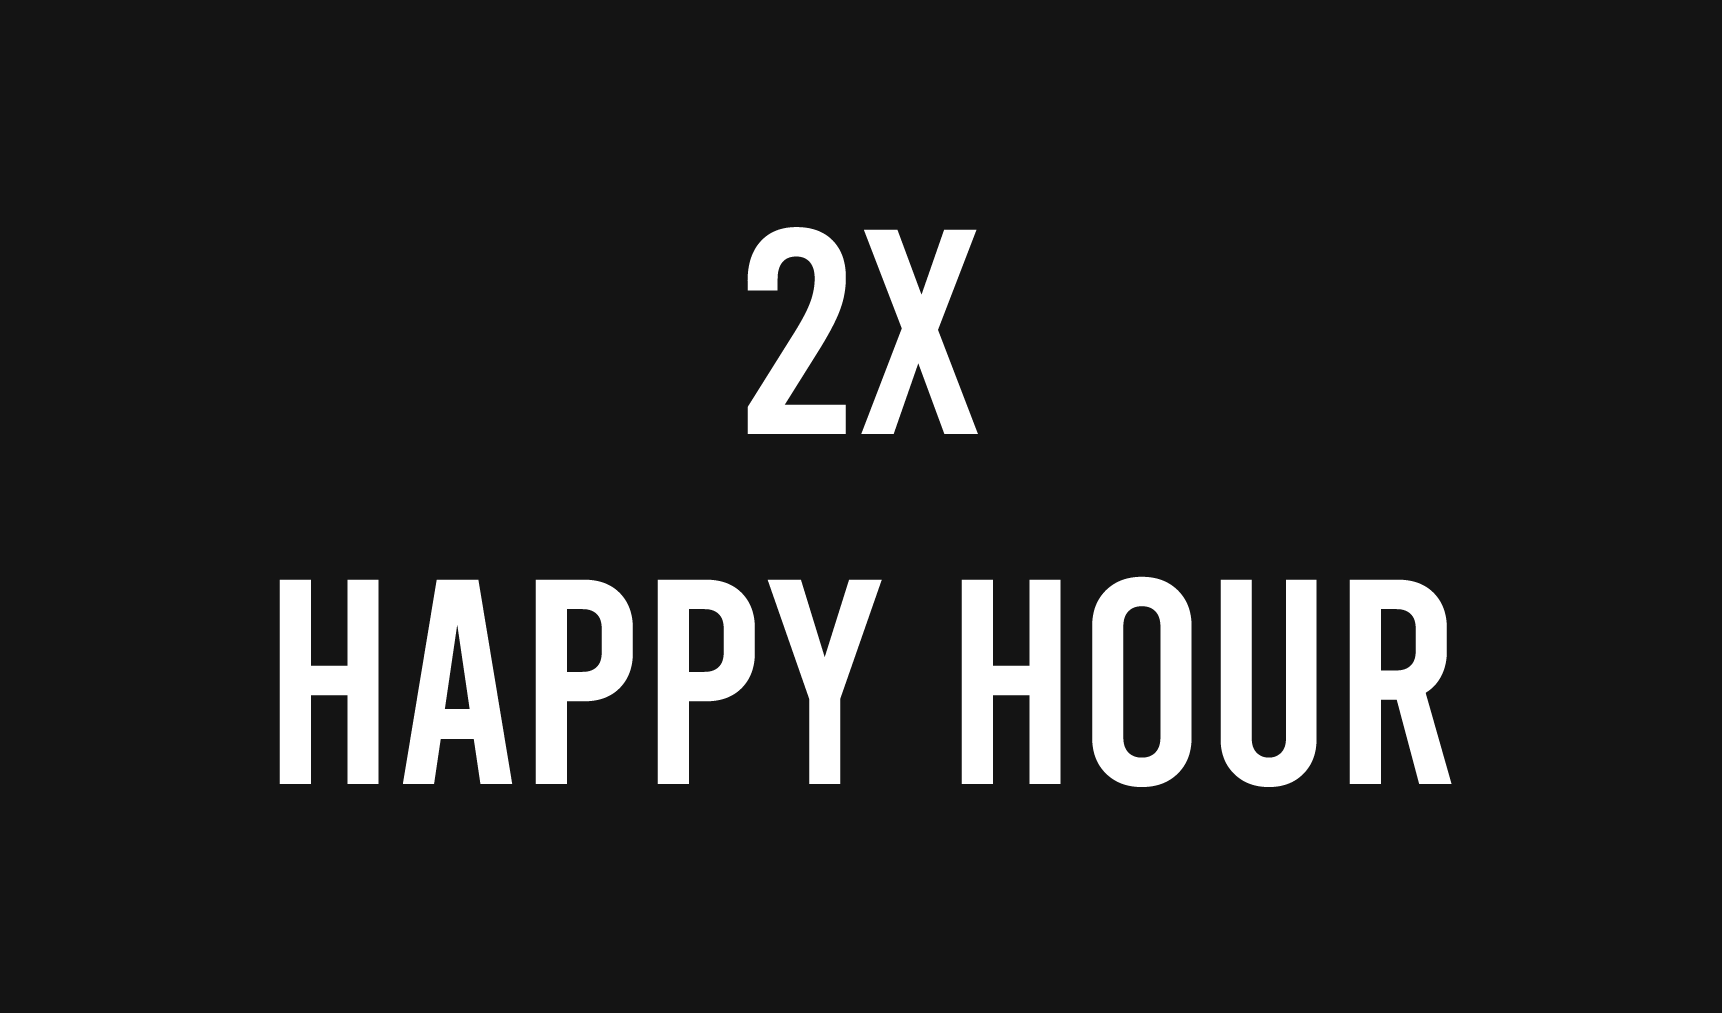 2x Happy Hour